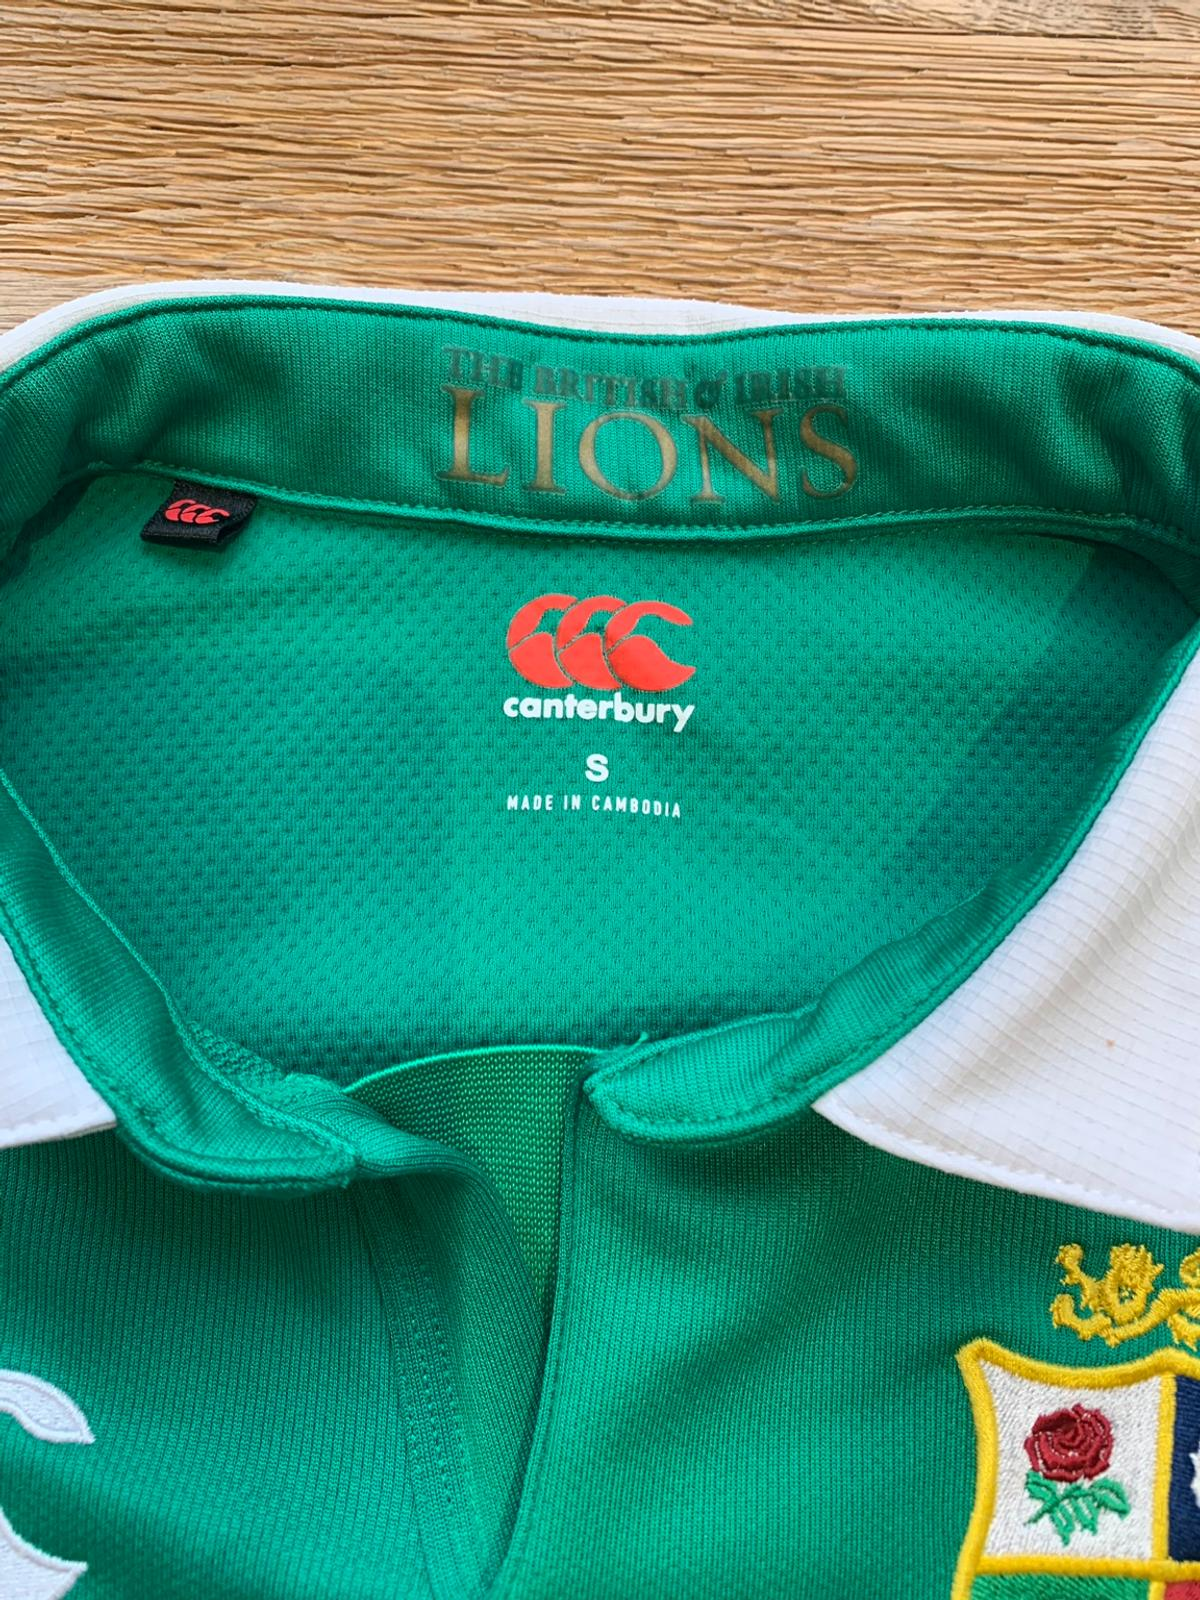 Lions shirt NZ 2017, worn once as new , adult size small, £70 new Smoke and pet free home, buyer to collect or local drop off no posting BR1